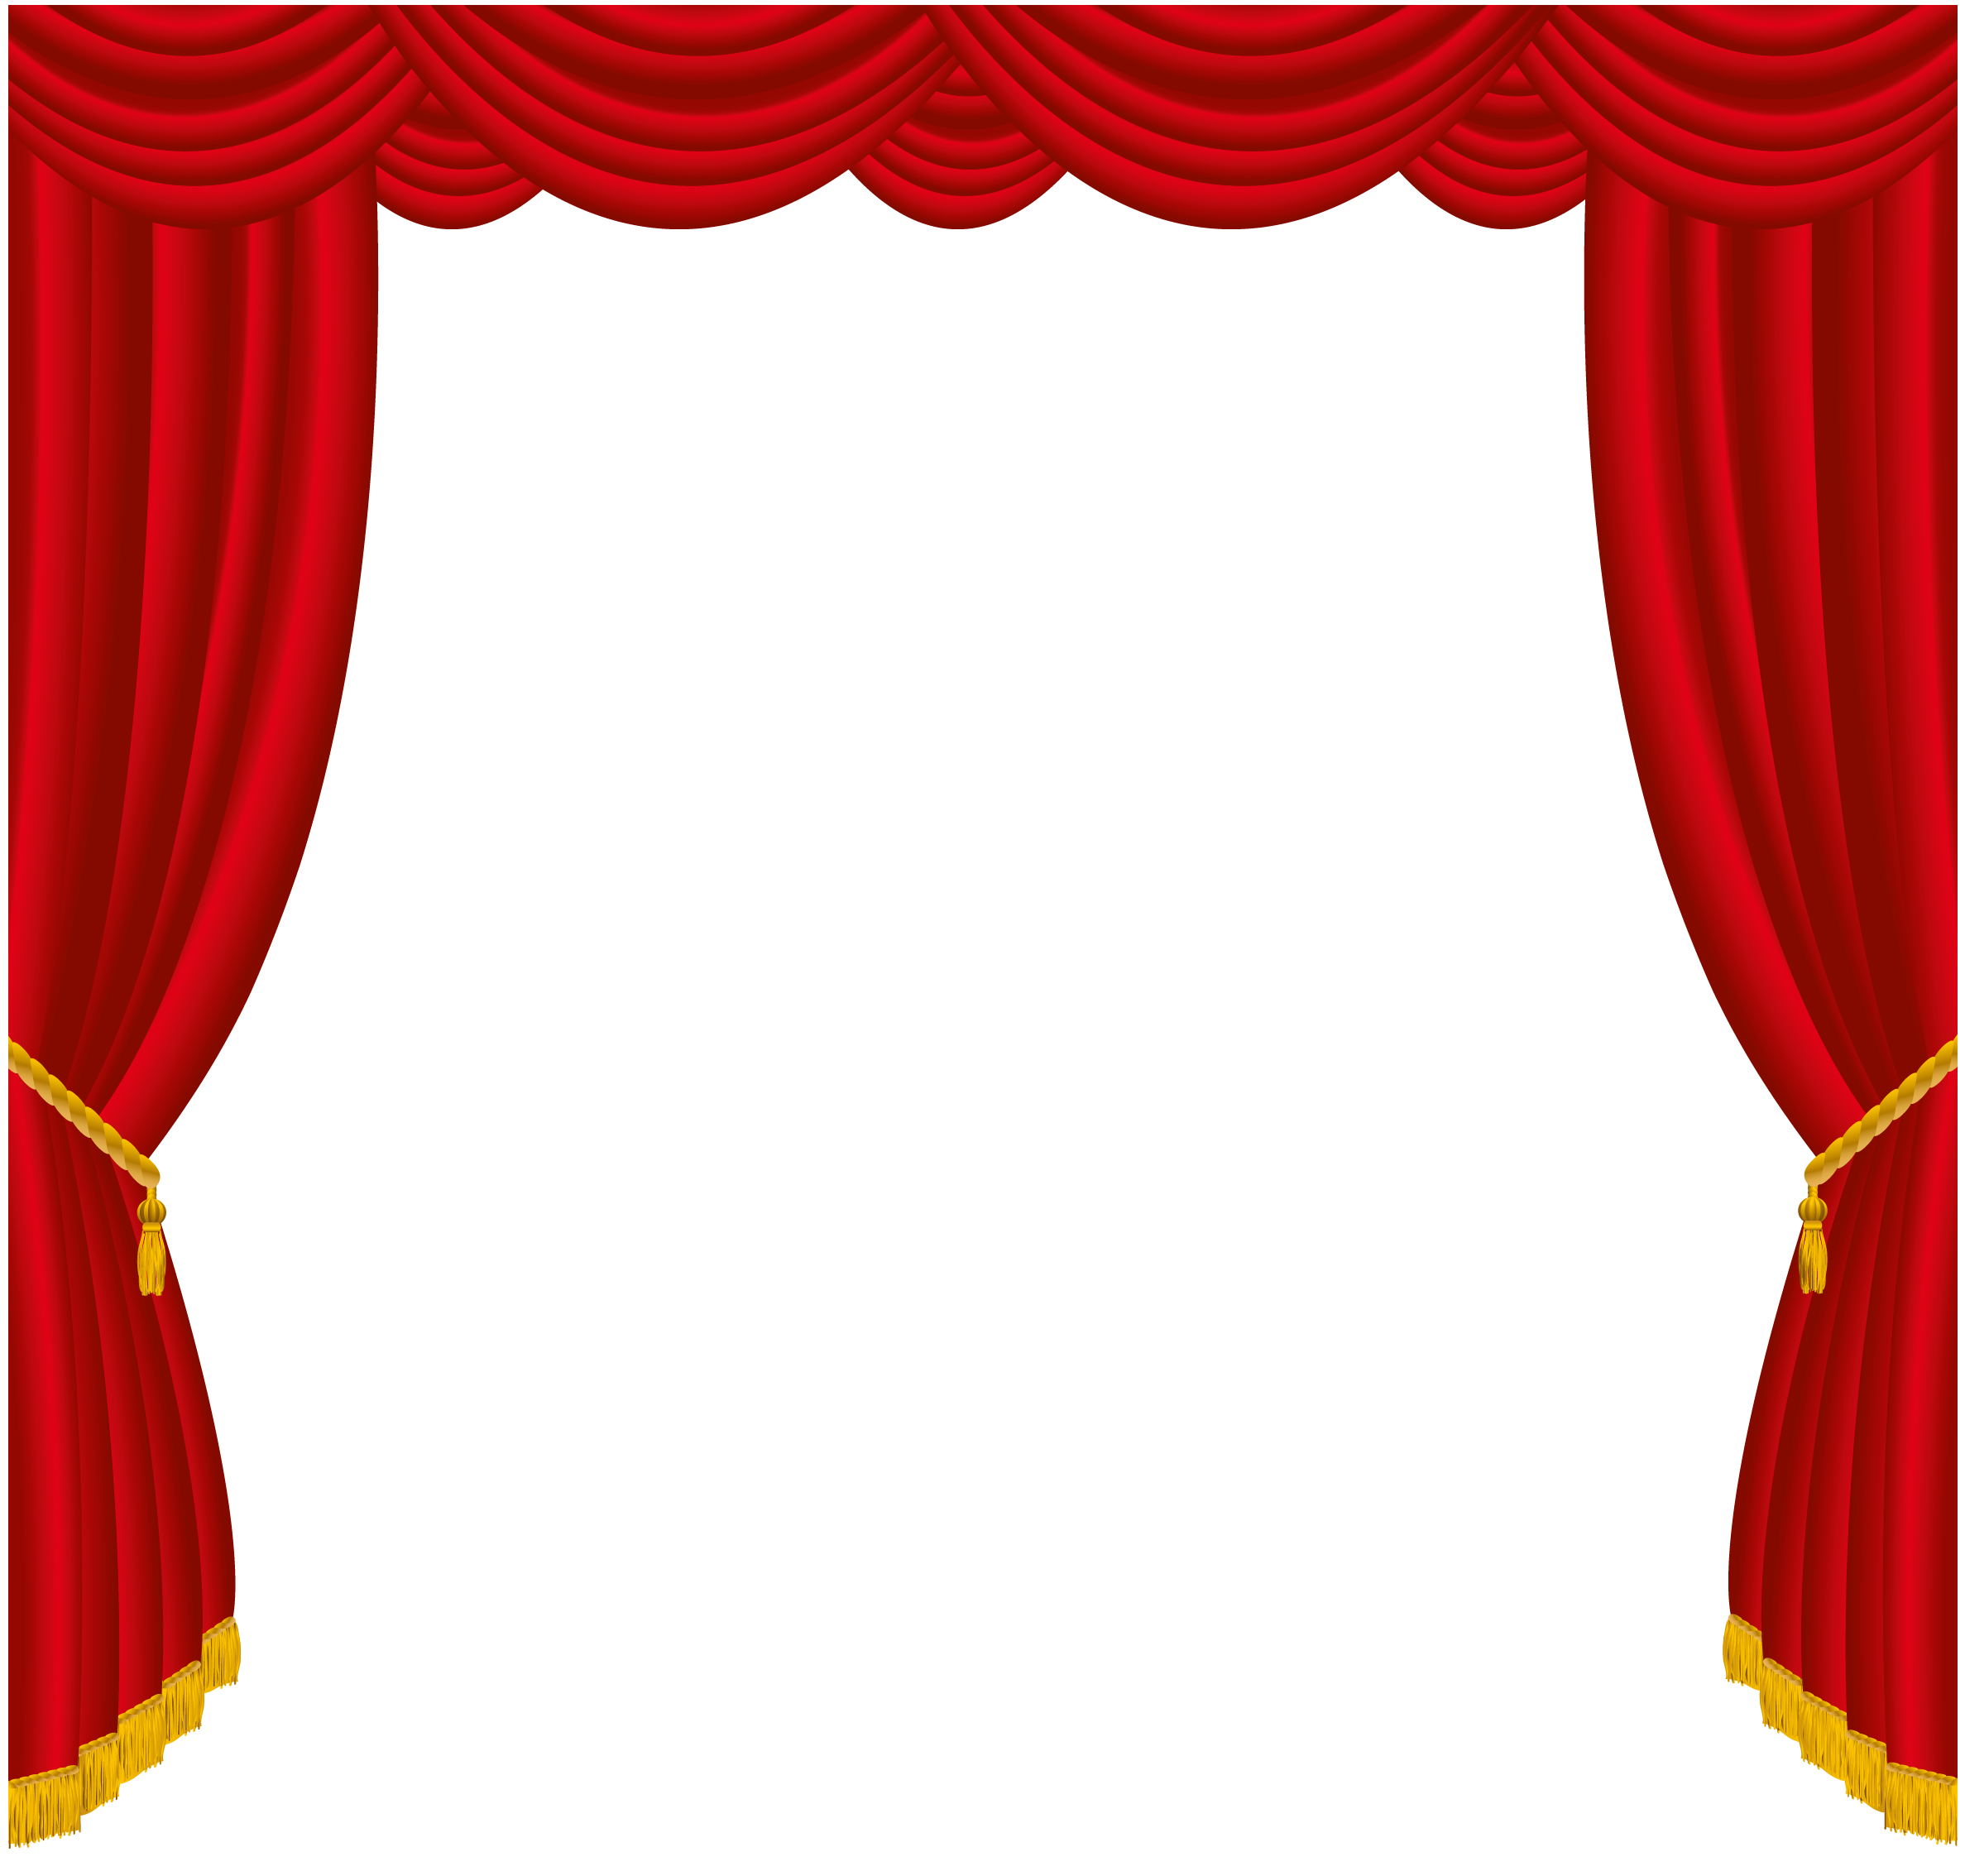 Curtains clipart curtain frame. Transparent red decor png